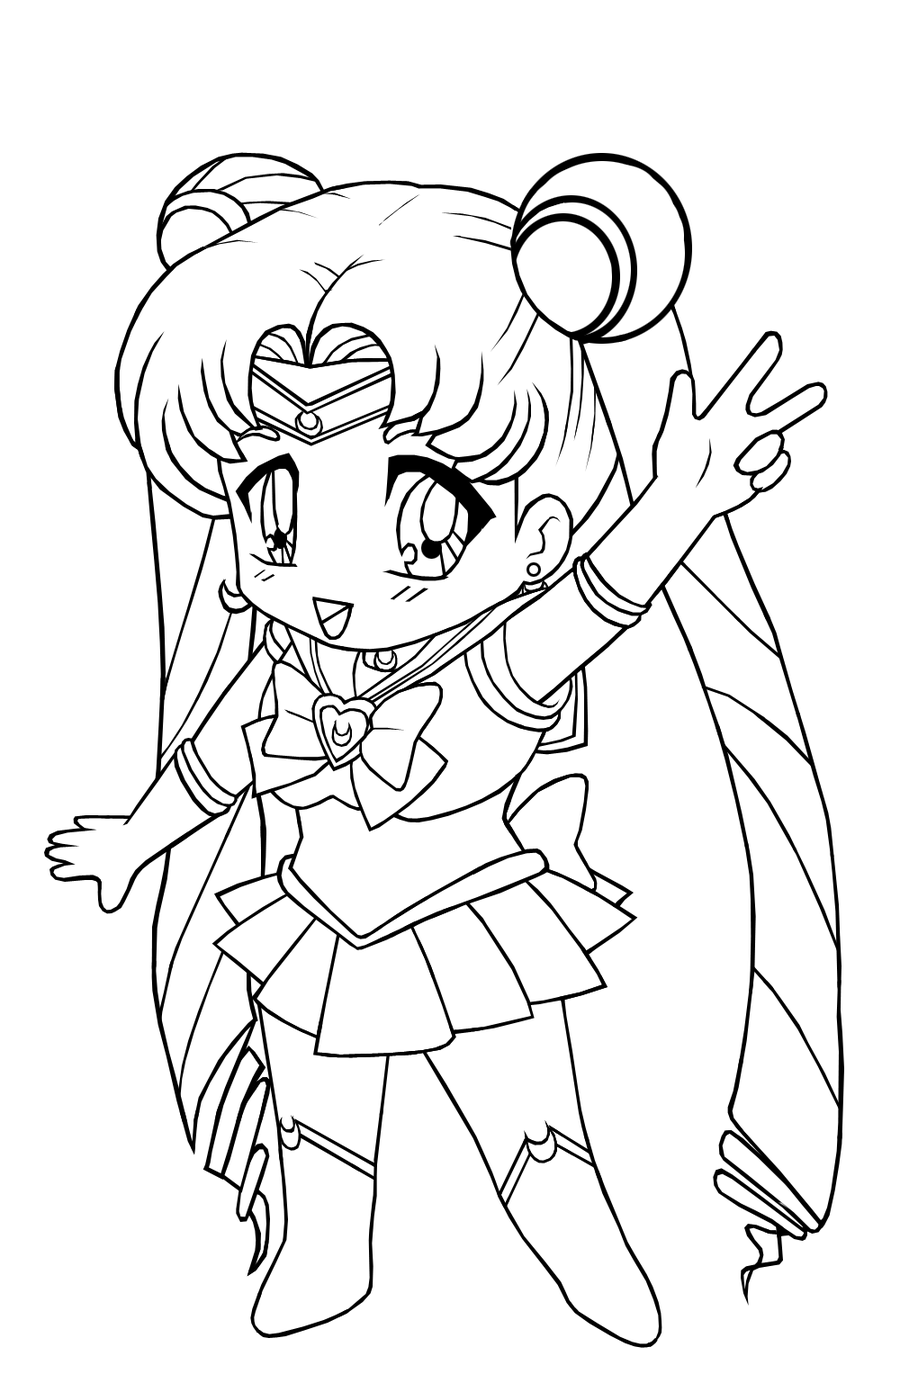 coloring pages chibi chibi anime girl drawing at getdrawings free download coloring chibi pages